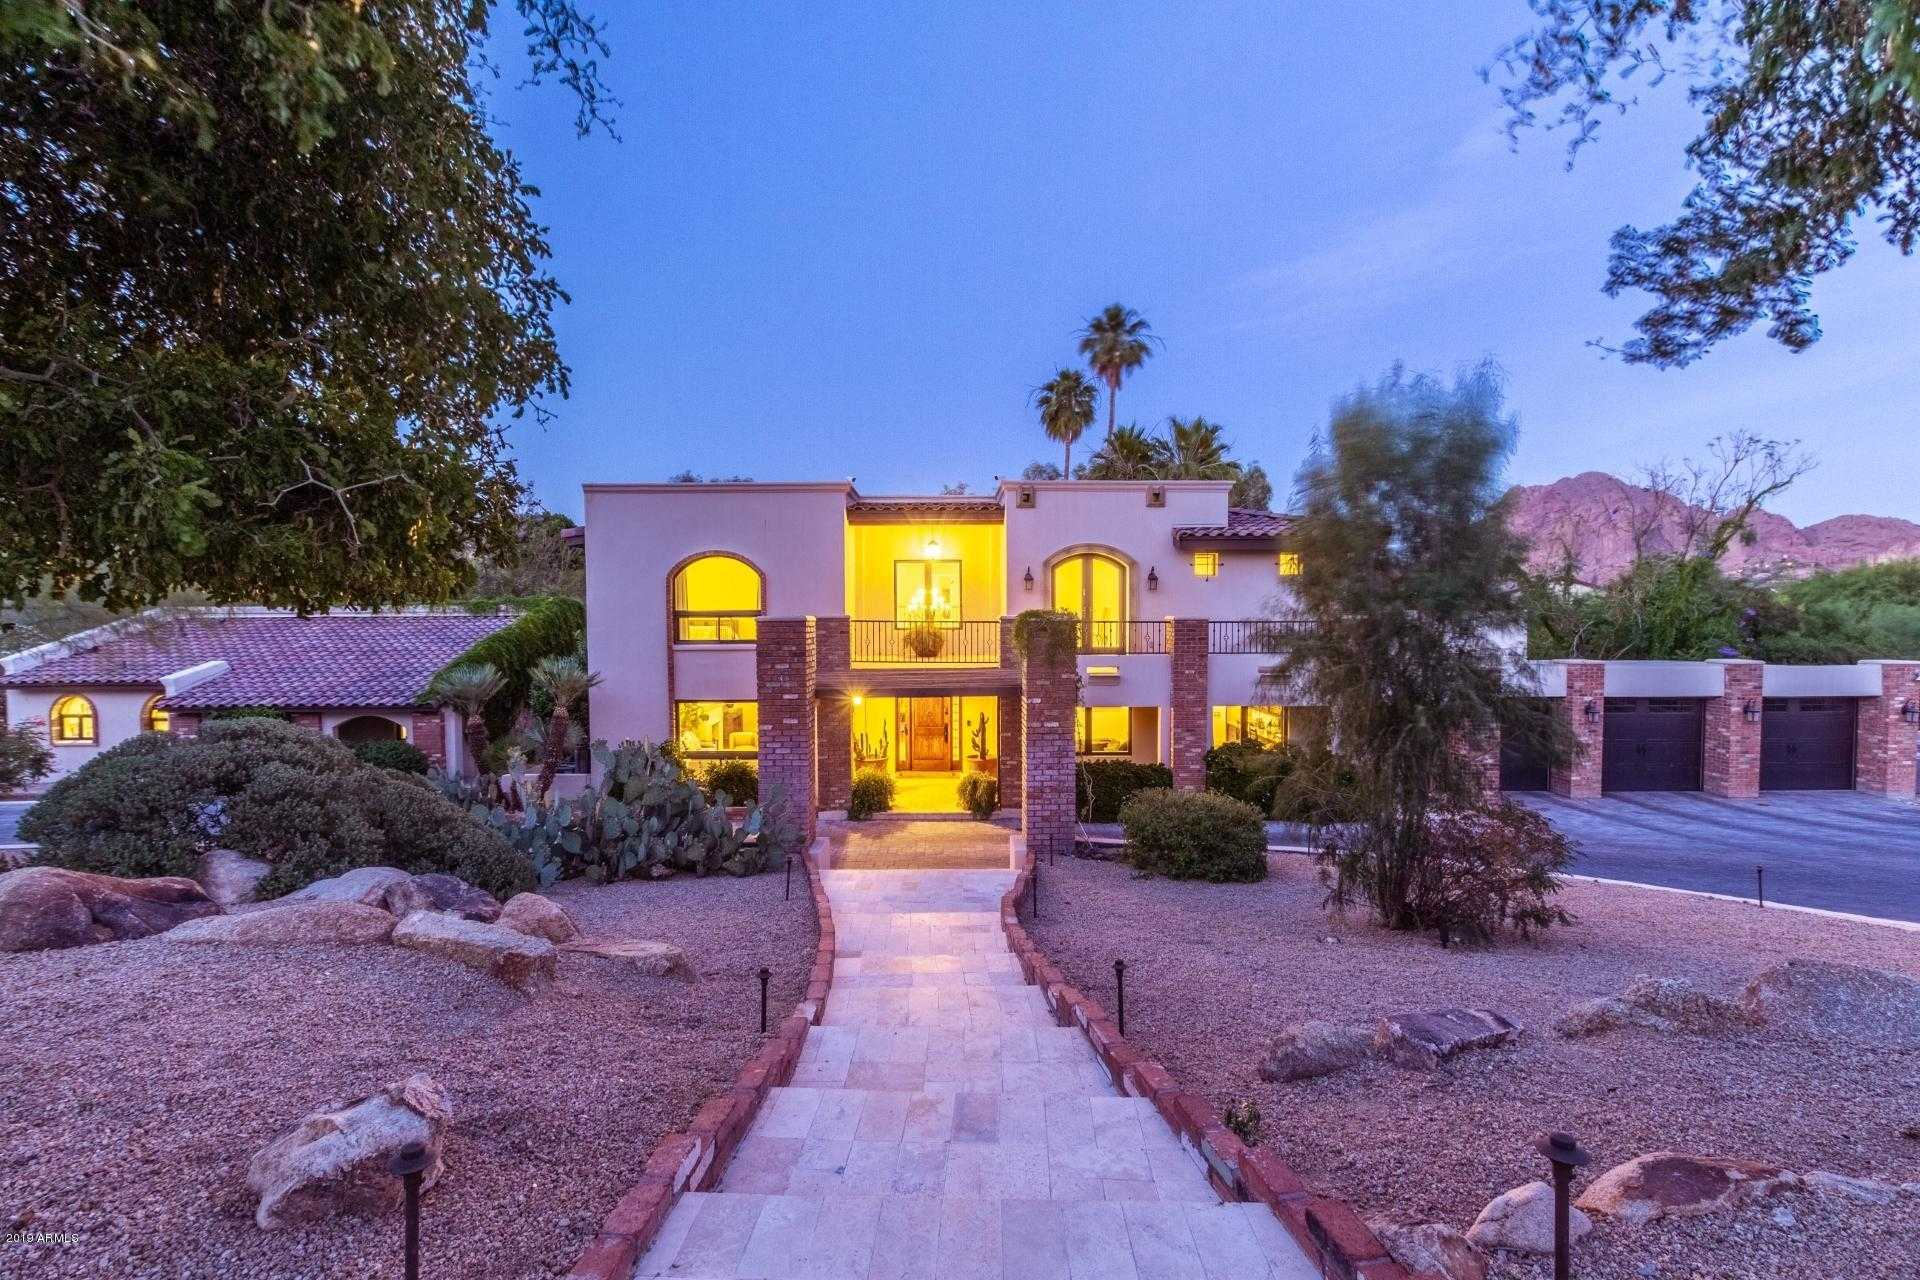 $1,795,000 - 5Br/4Ba - Home for Sale in Camelback Foothills 2, Paradise Valley